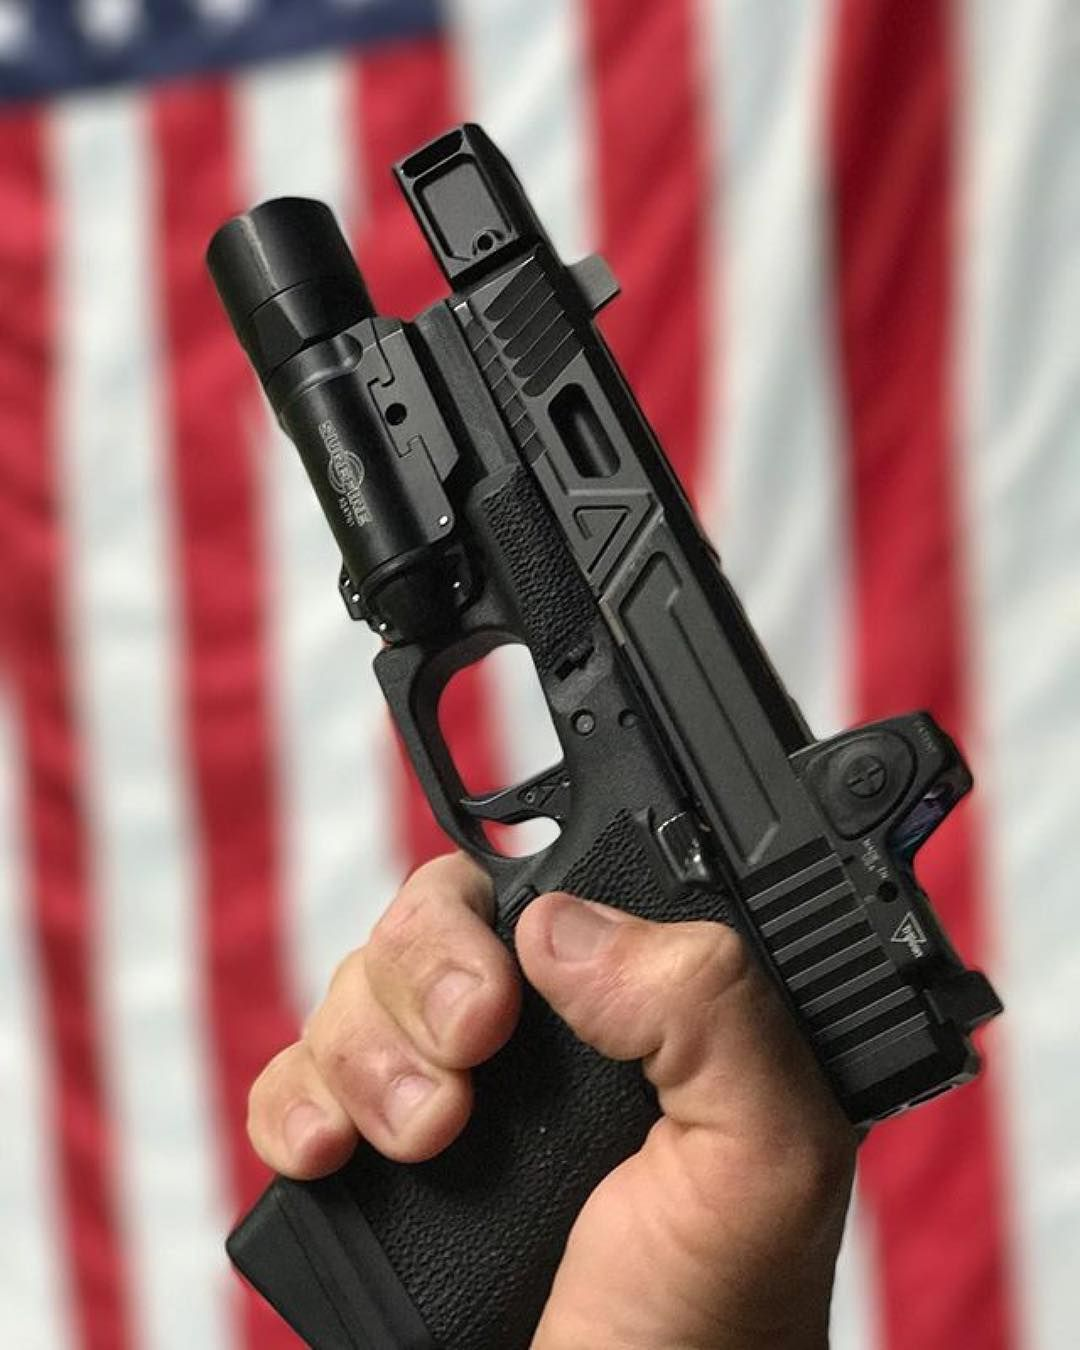 Beautiful Glock 19 rocking an @agencyarms slide and our